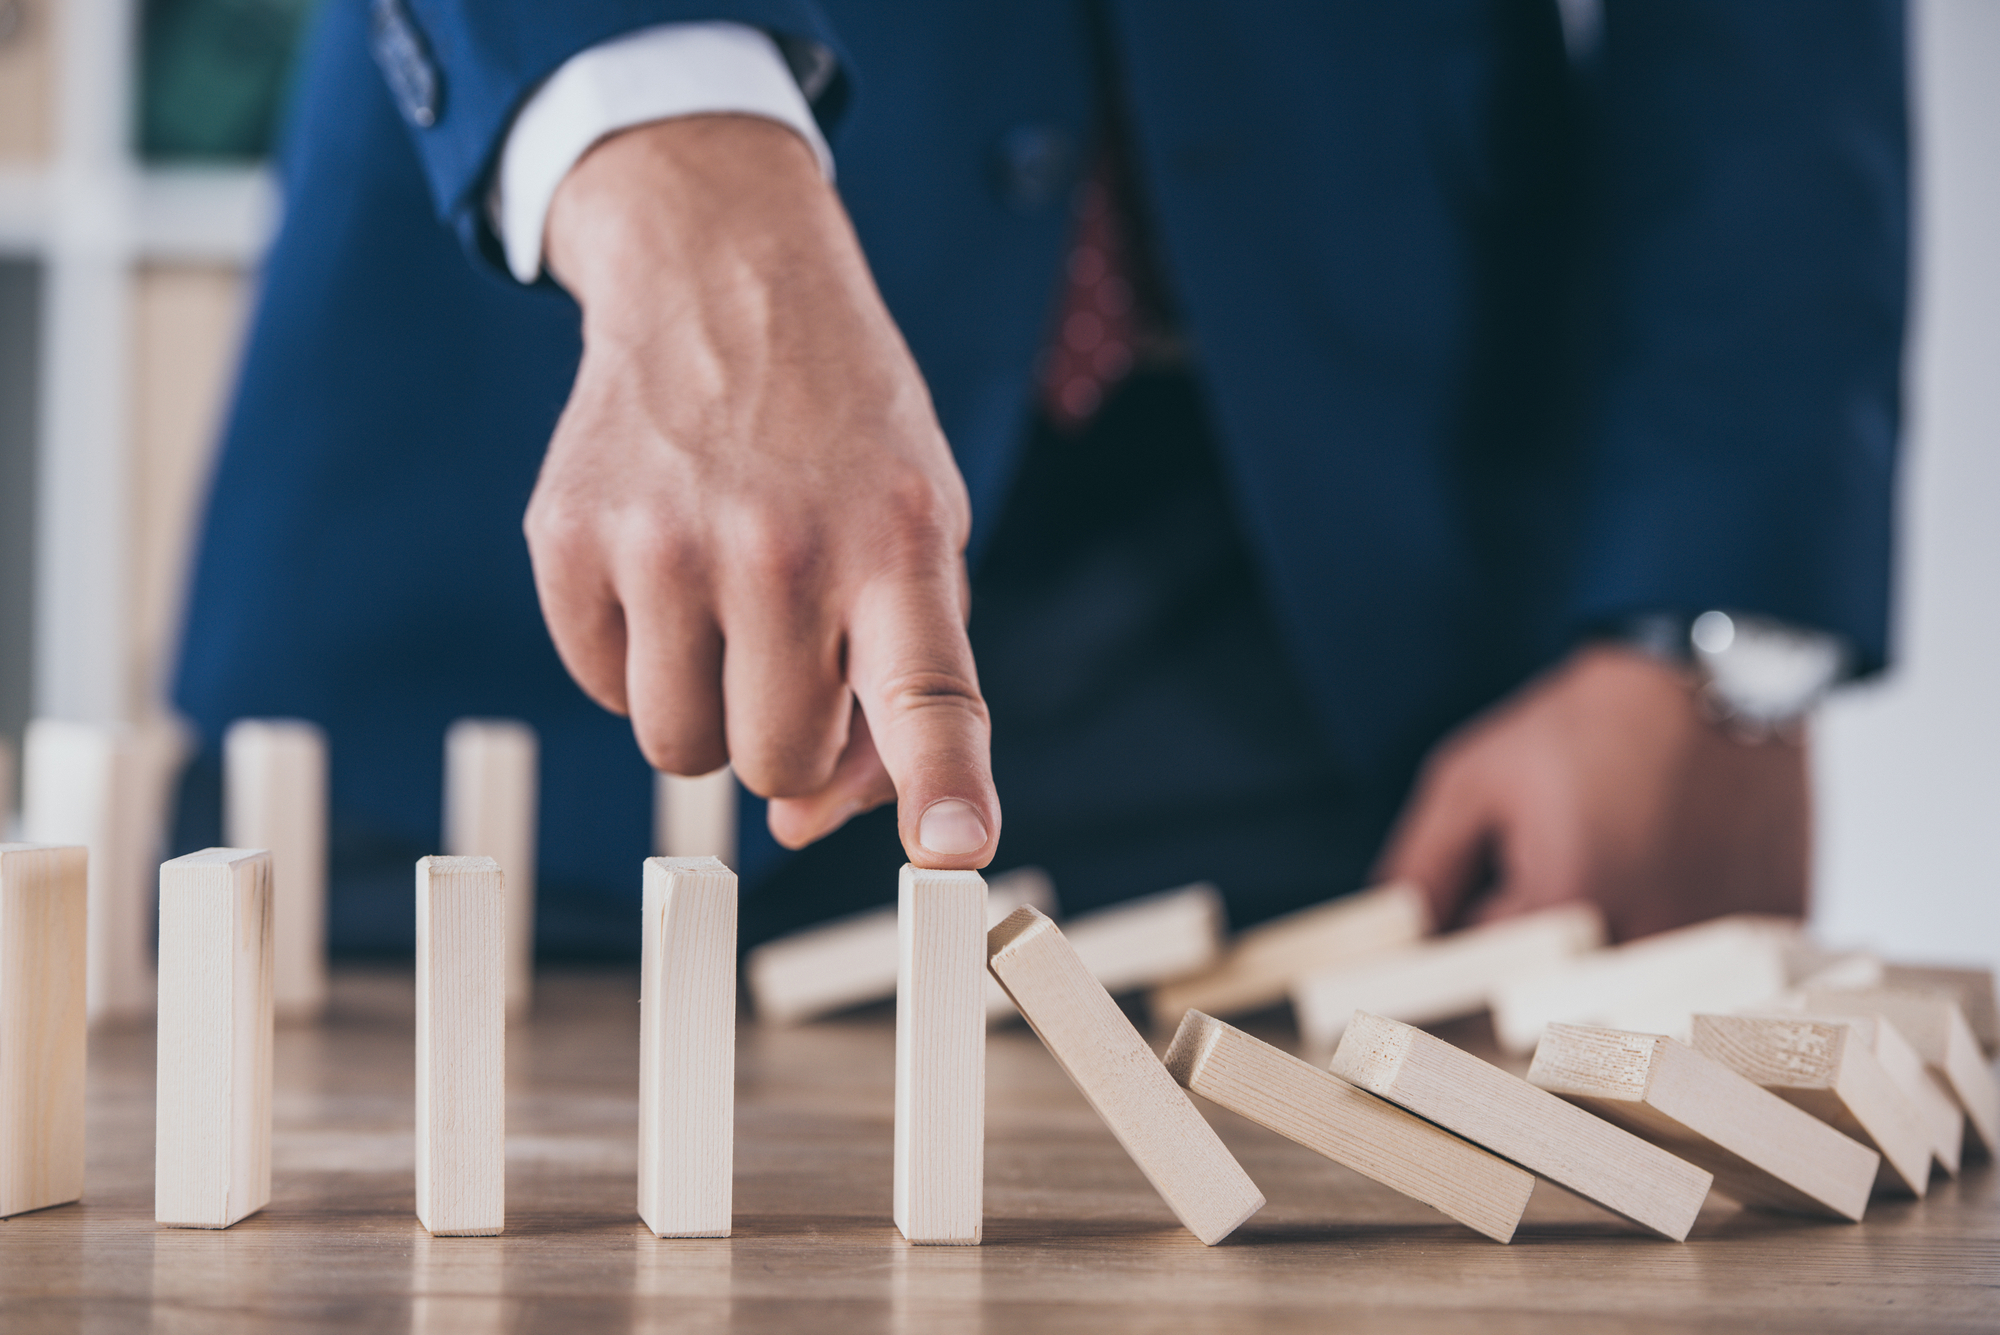 Partial view of risk manager blocking domino effect of falling wooden blocks-1